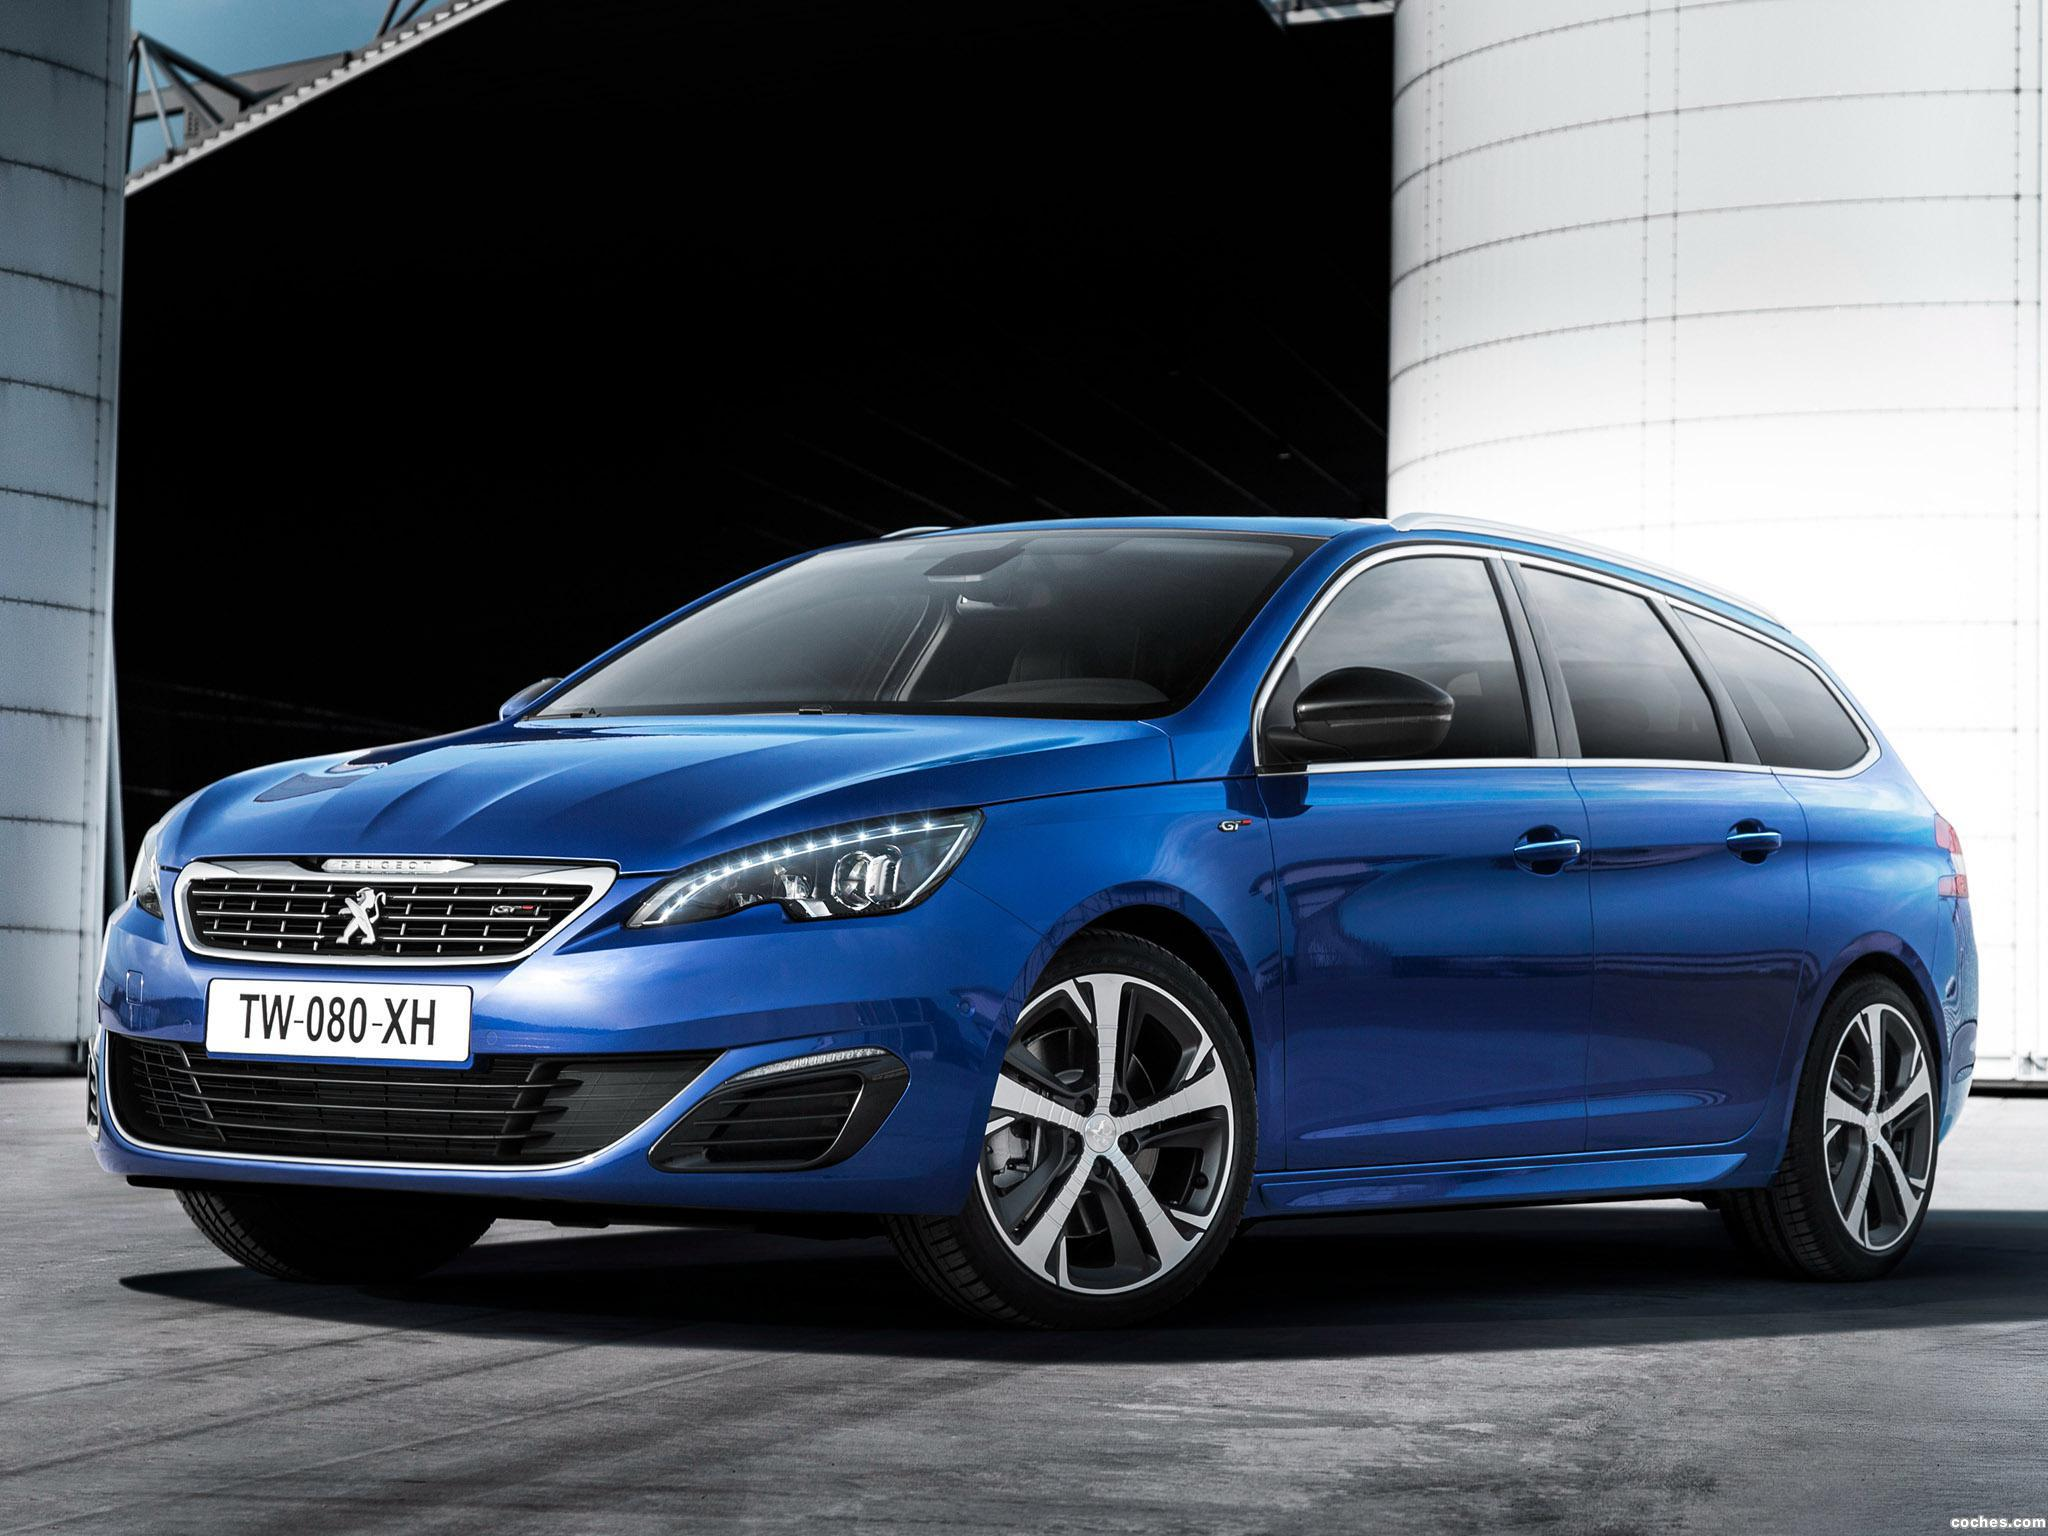 fotos de peugeot 308 gt sw 2014. Black Bedroom Furniture Sets. Home Design Ideas